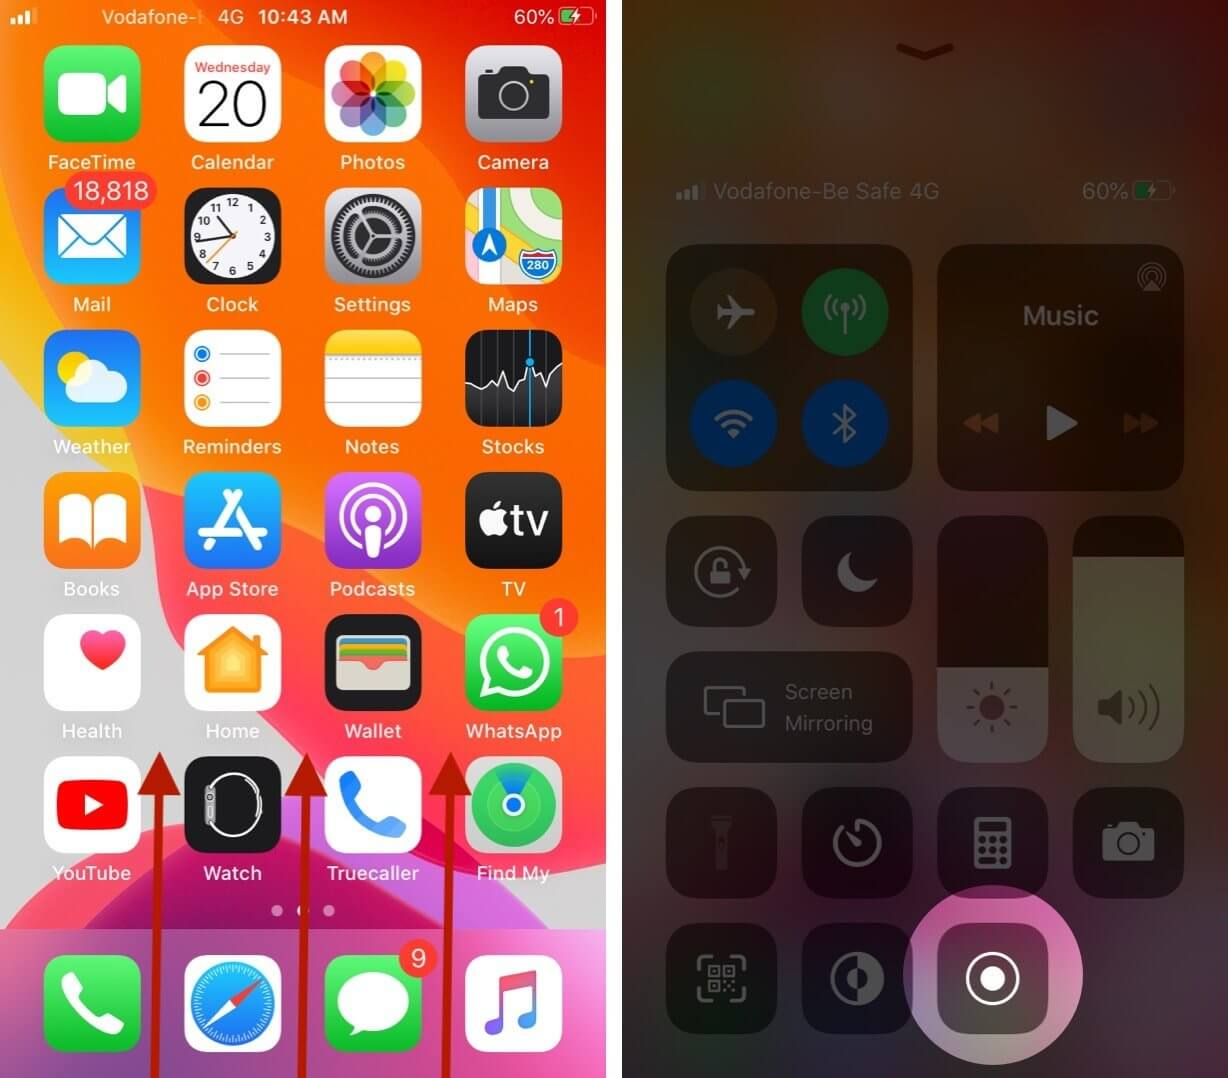 Touch and Hold Screen Recroding in Control Center on iPhone